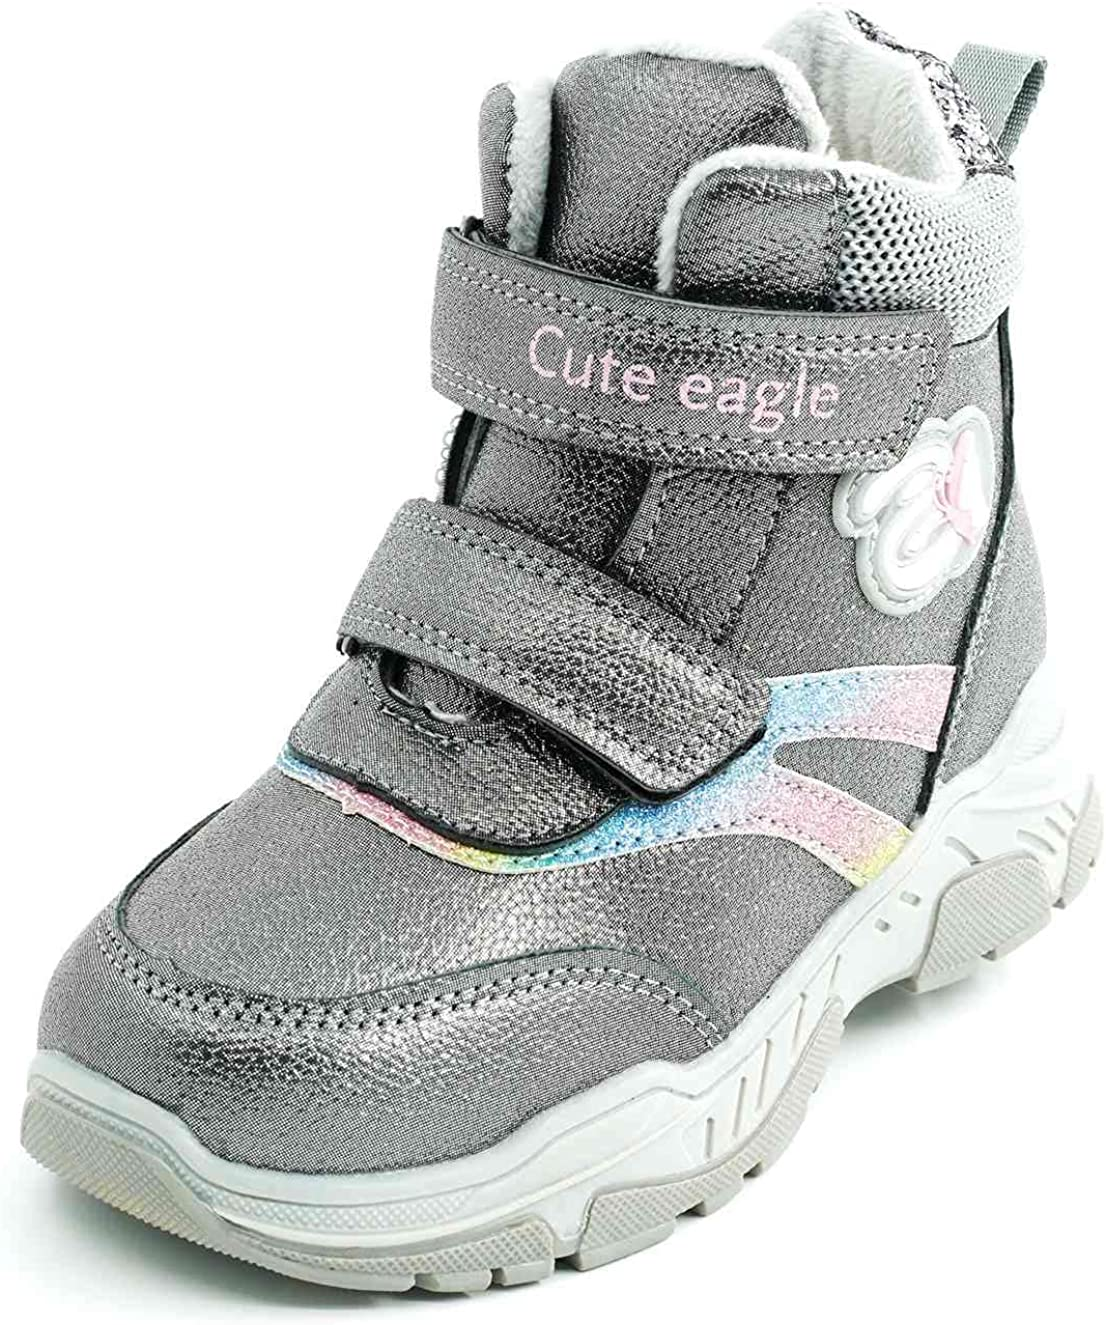 Ranking TOP9 Girls Snow Boots for New product!! Kids little Outdoor size R Winter Warm Slip